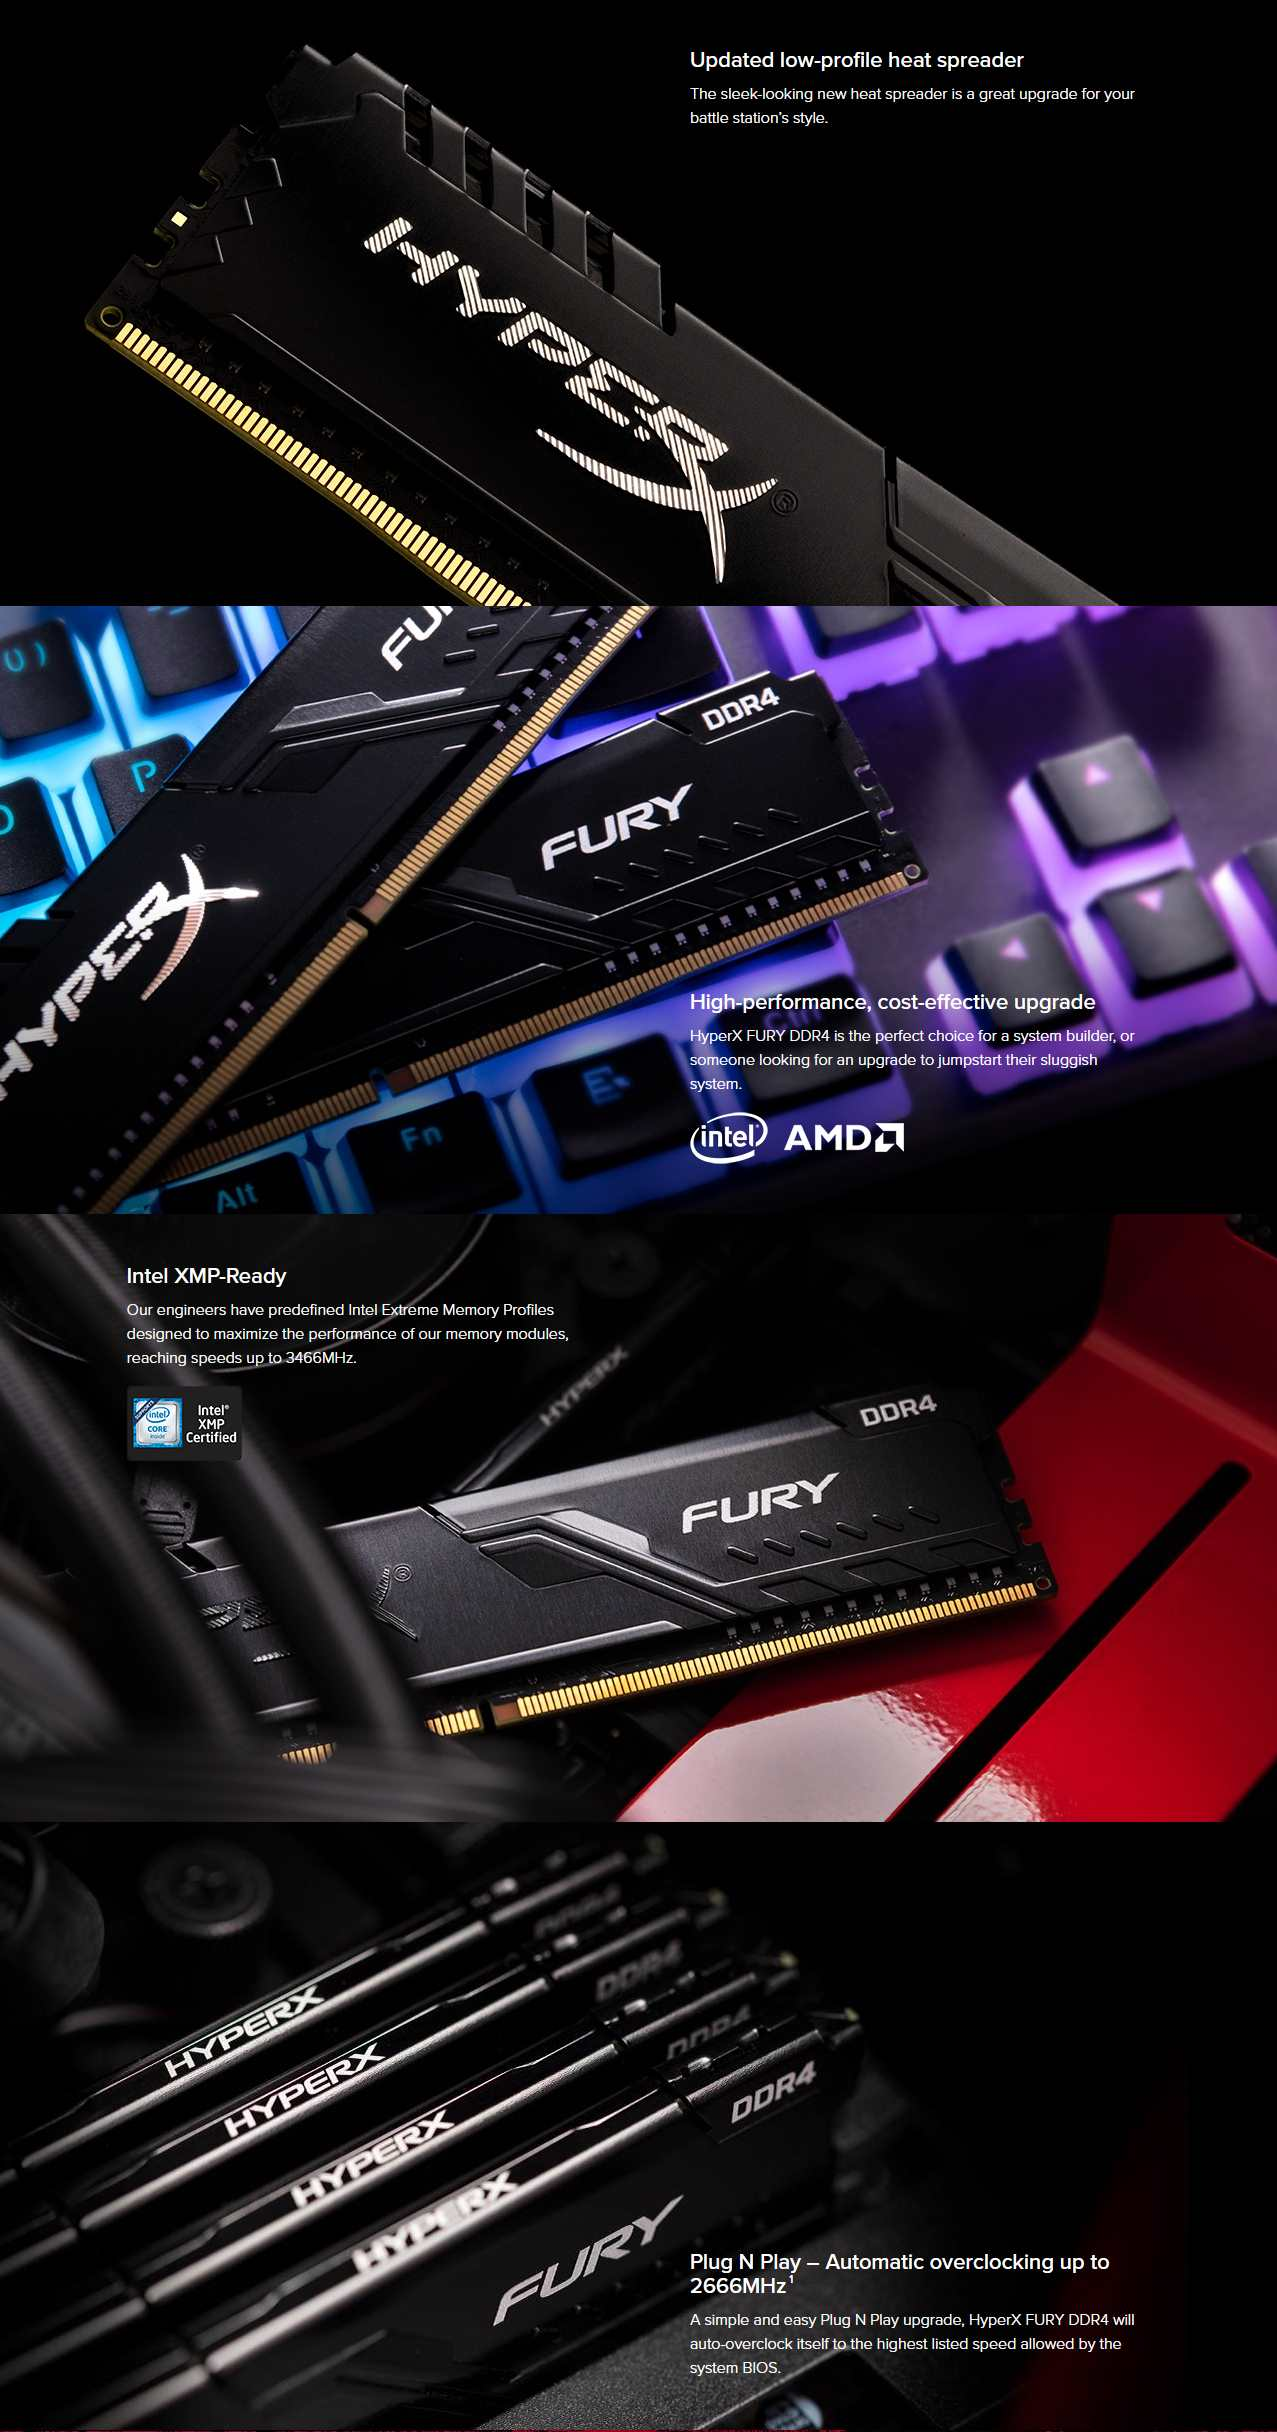 A large marketing image providing additional information about the product Kingston 32GB Kit (2x16GB) DDR4 HyperX Fury Black C16 3200MHz - Additional alt info not provided